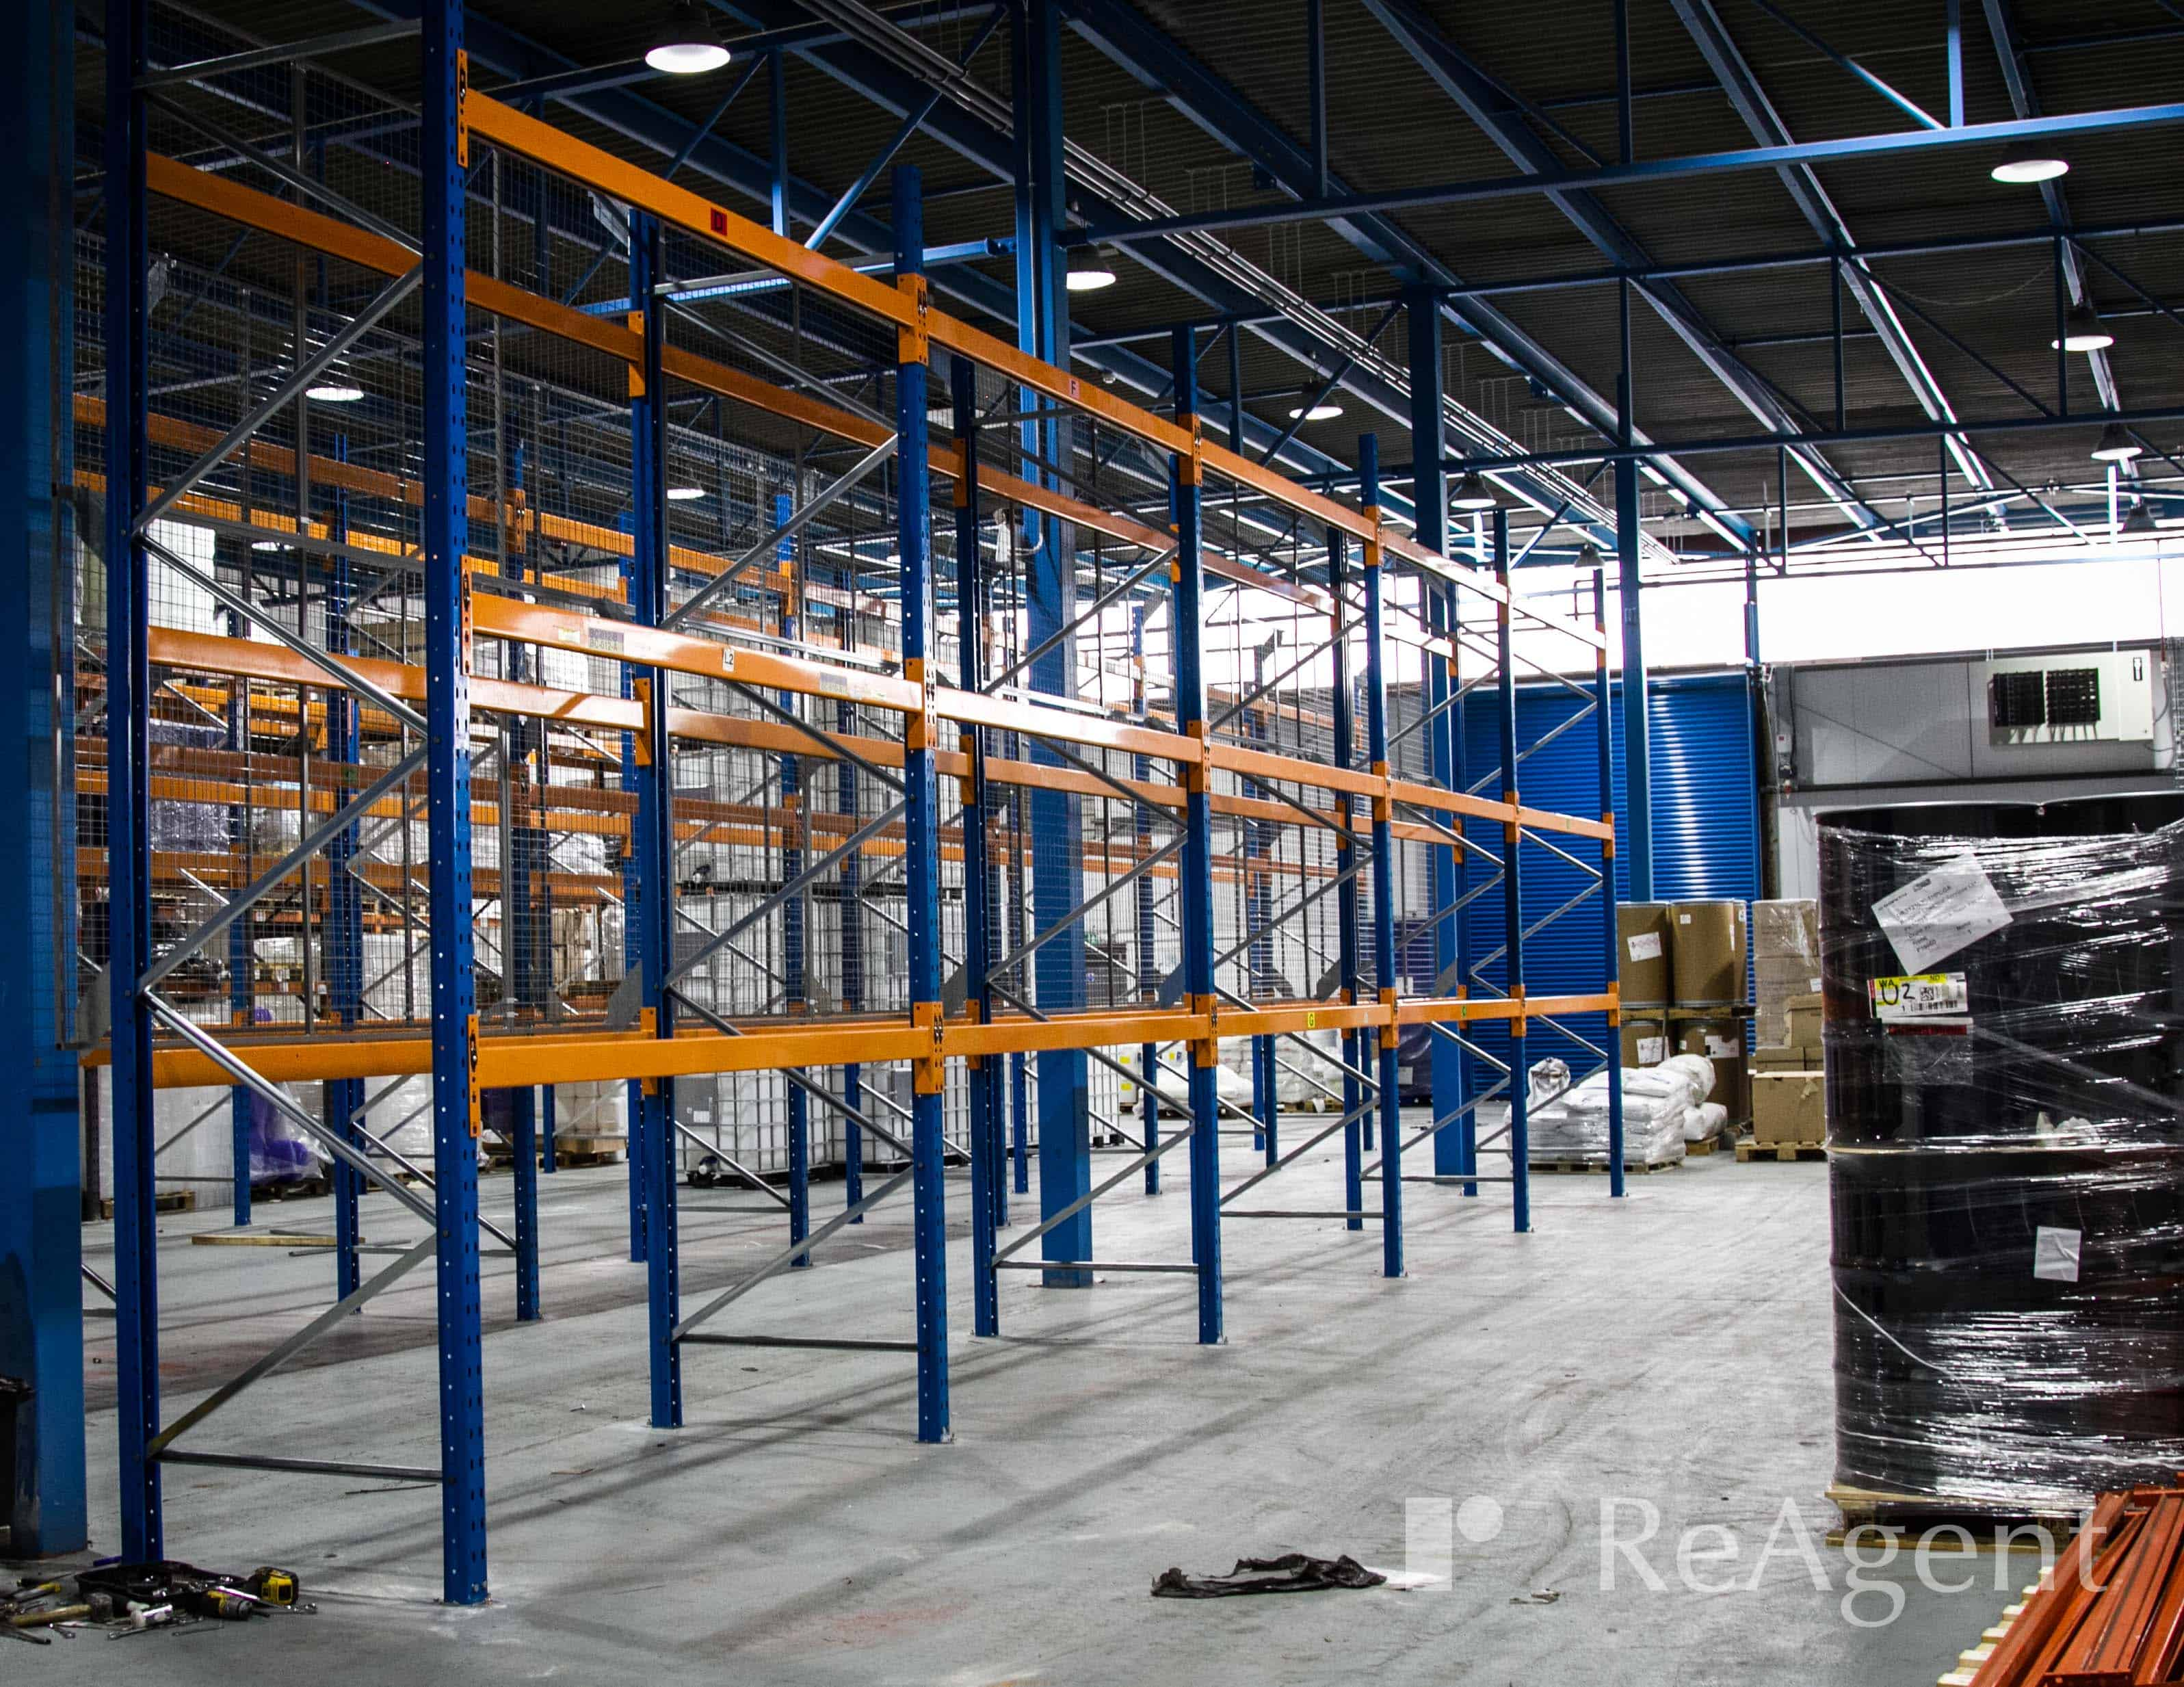 Blue and orange pallet racking in a factory